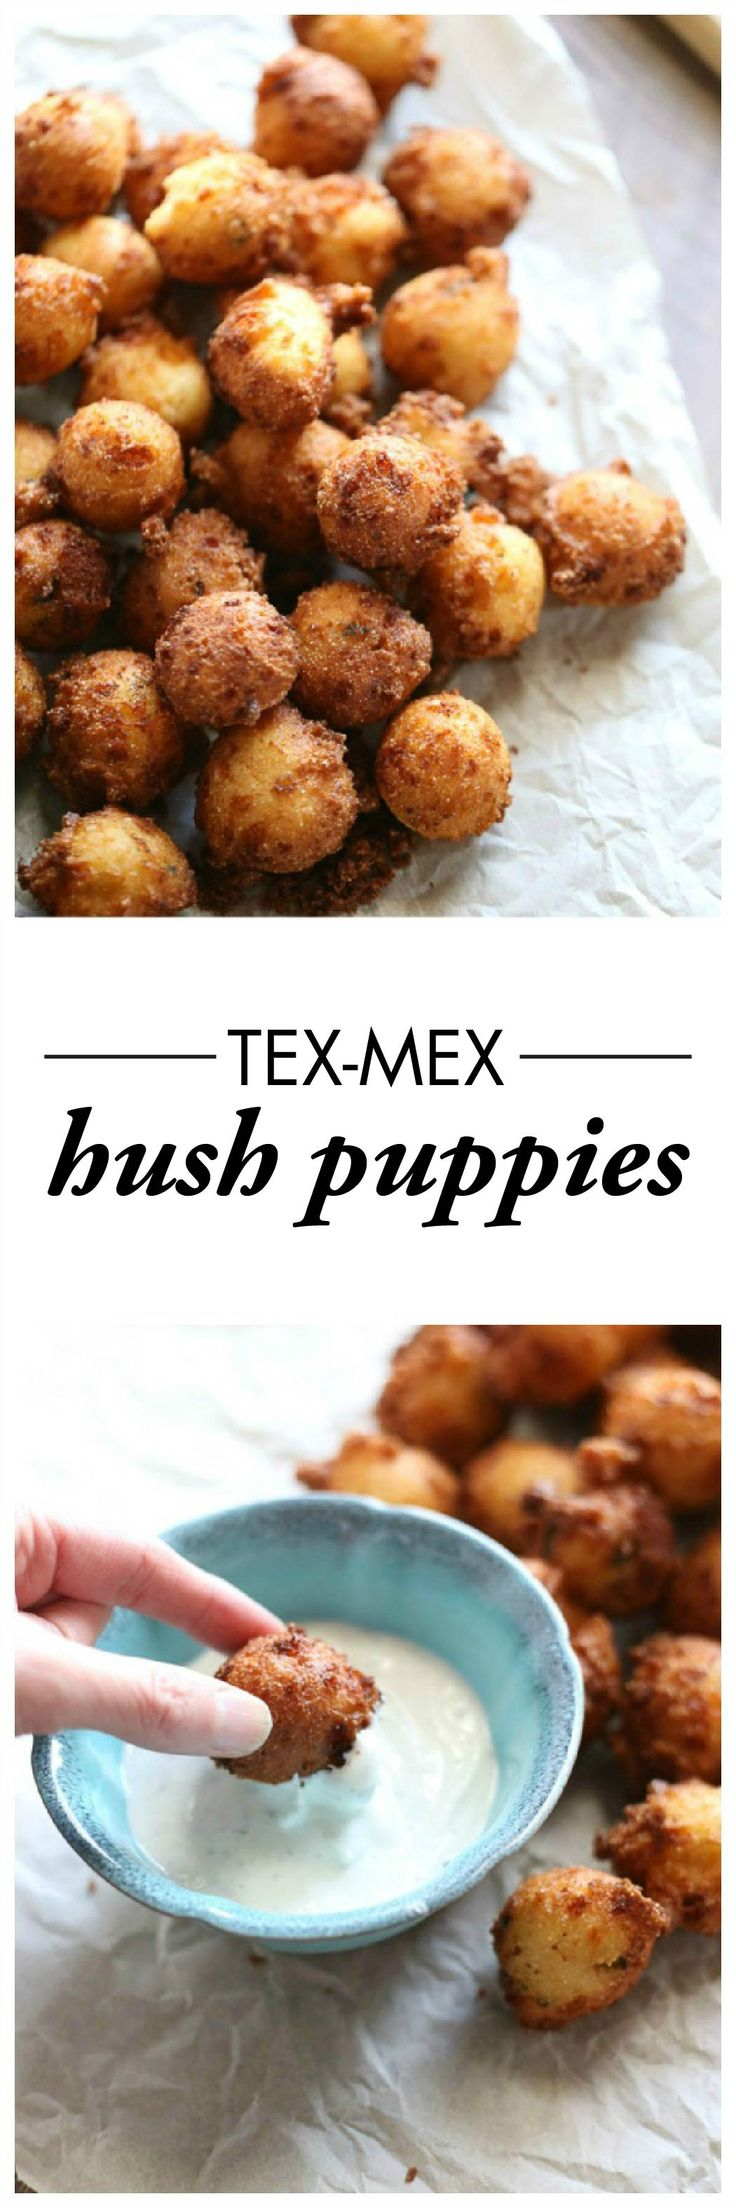 This Tex Mex Hush Puppy recipe is so fun and easy; one bite and you and your guests will be hooked!  Don't forget the buttermilk ranch dipping sauce.